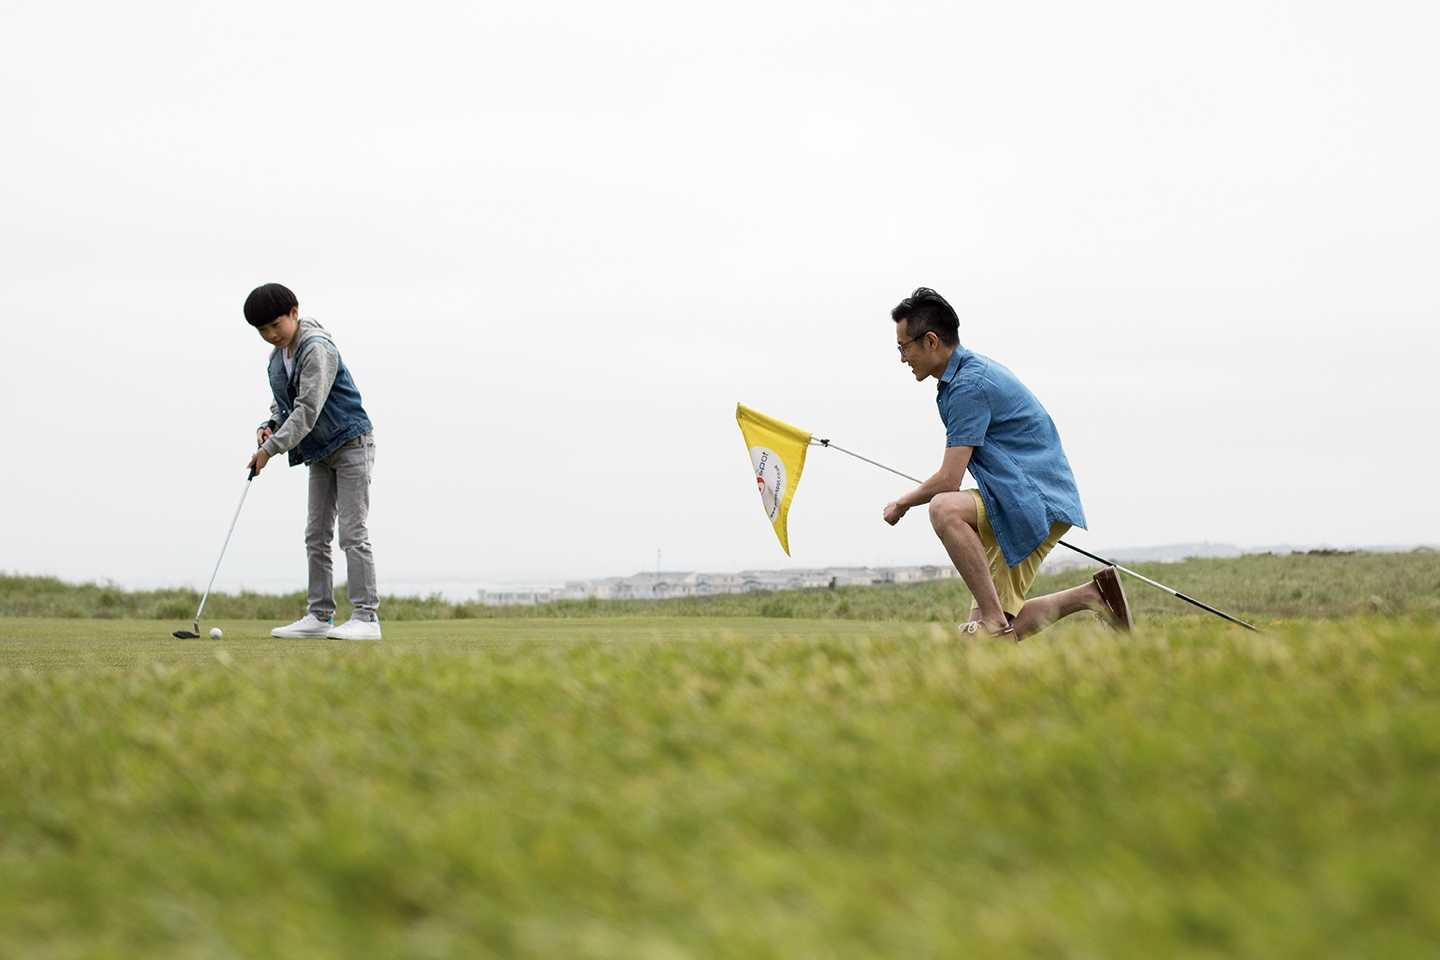 Guests playing a round of golf on the 18-hole golf course at Berwick